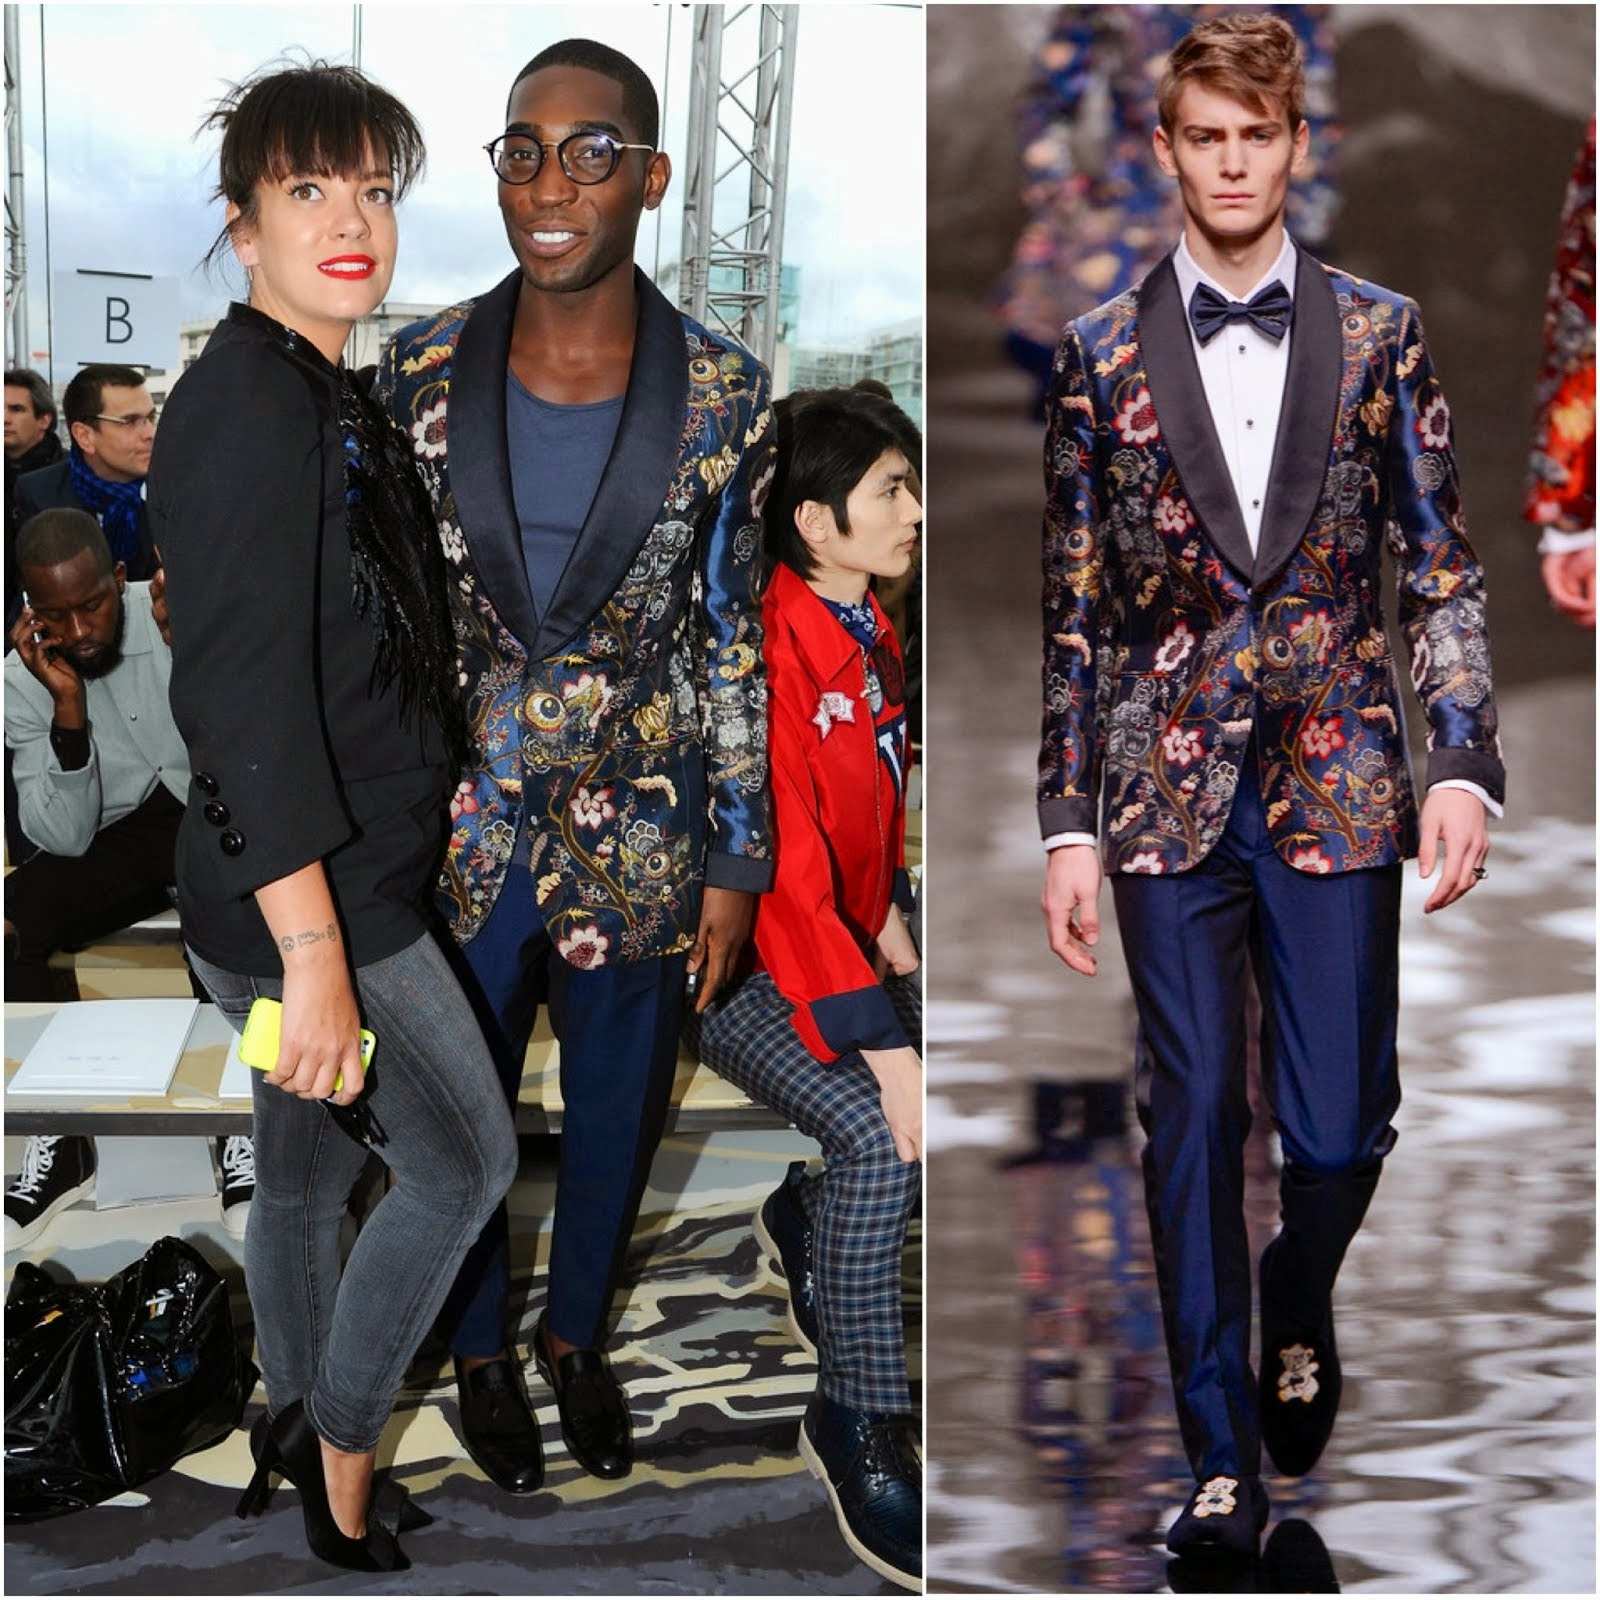 Tinie Tempah in Louis Vuitton - Louis Vuitton Fall Winter 2014, #PFW